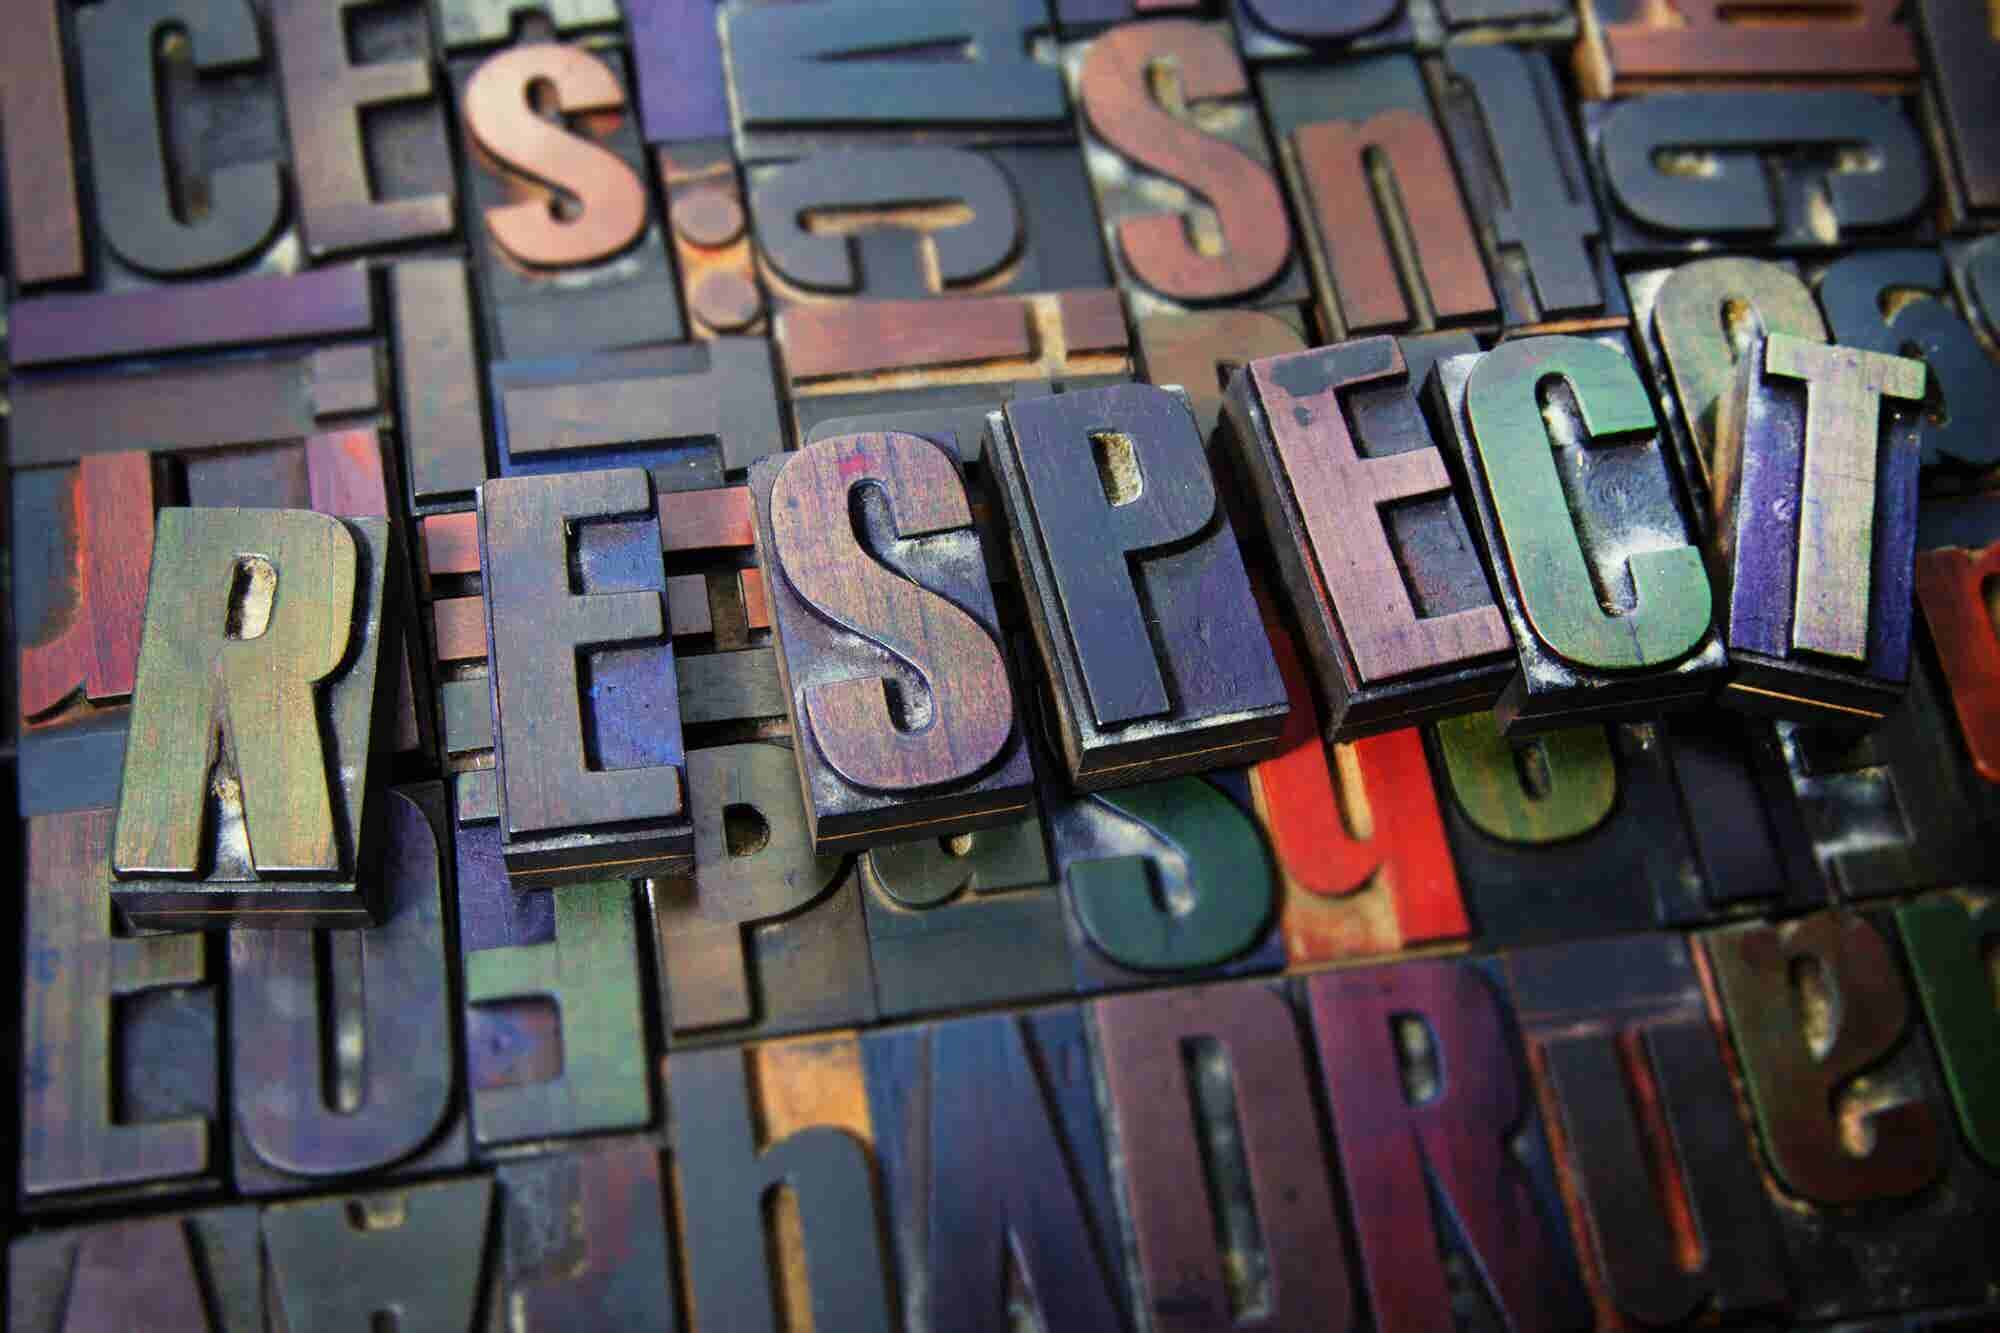 To Build a Resilient Culture Stop the Blaming and Shaming and Start Showing People Respect